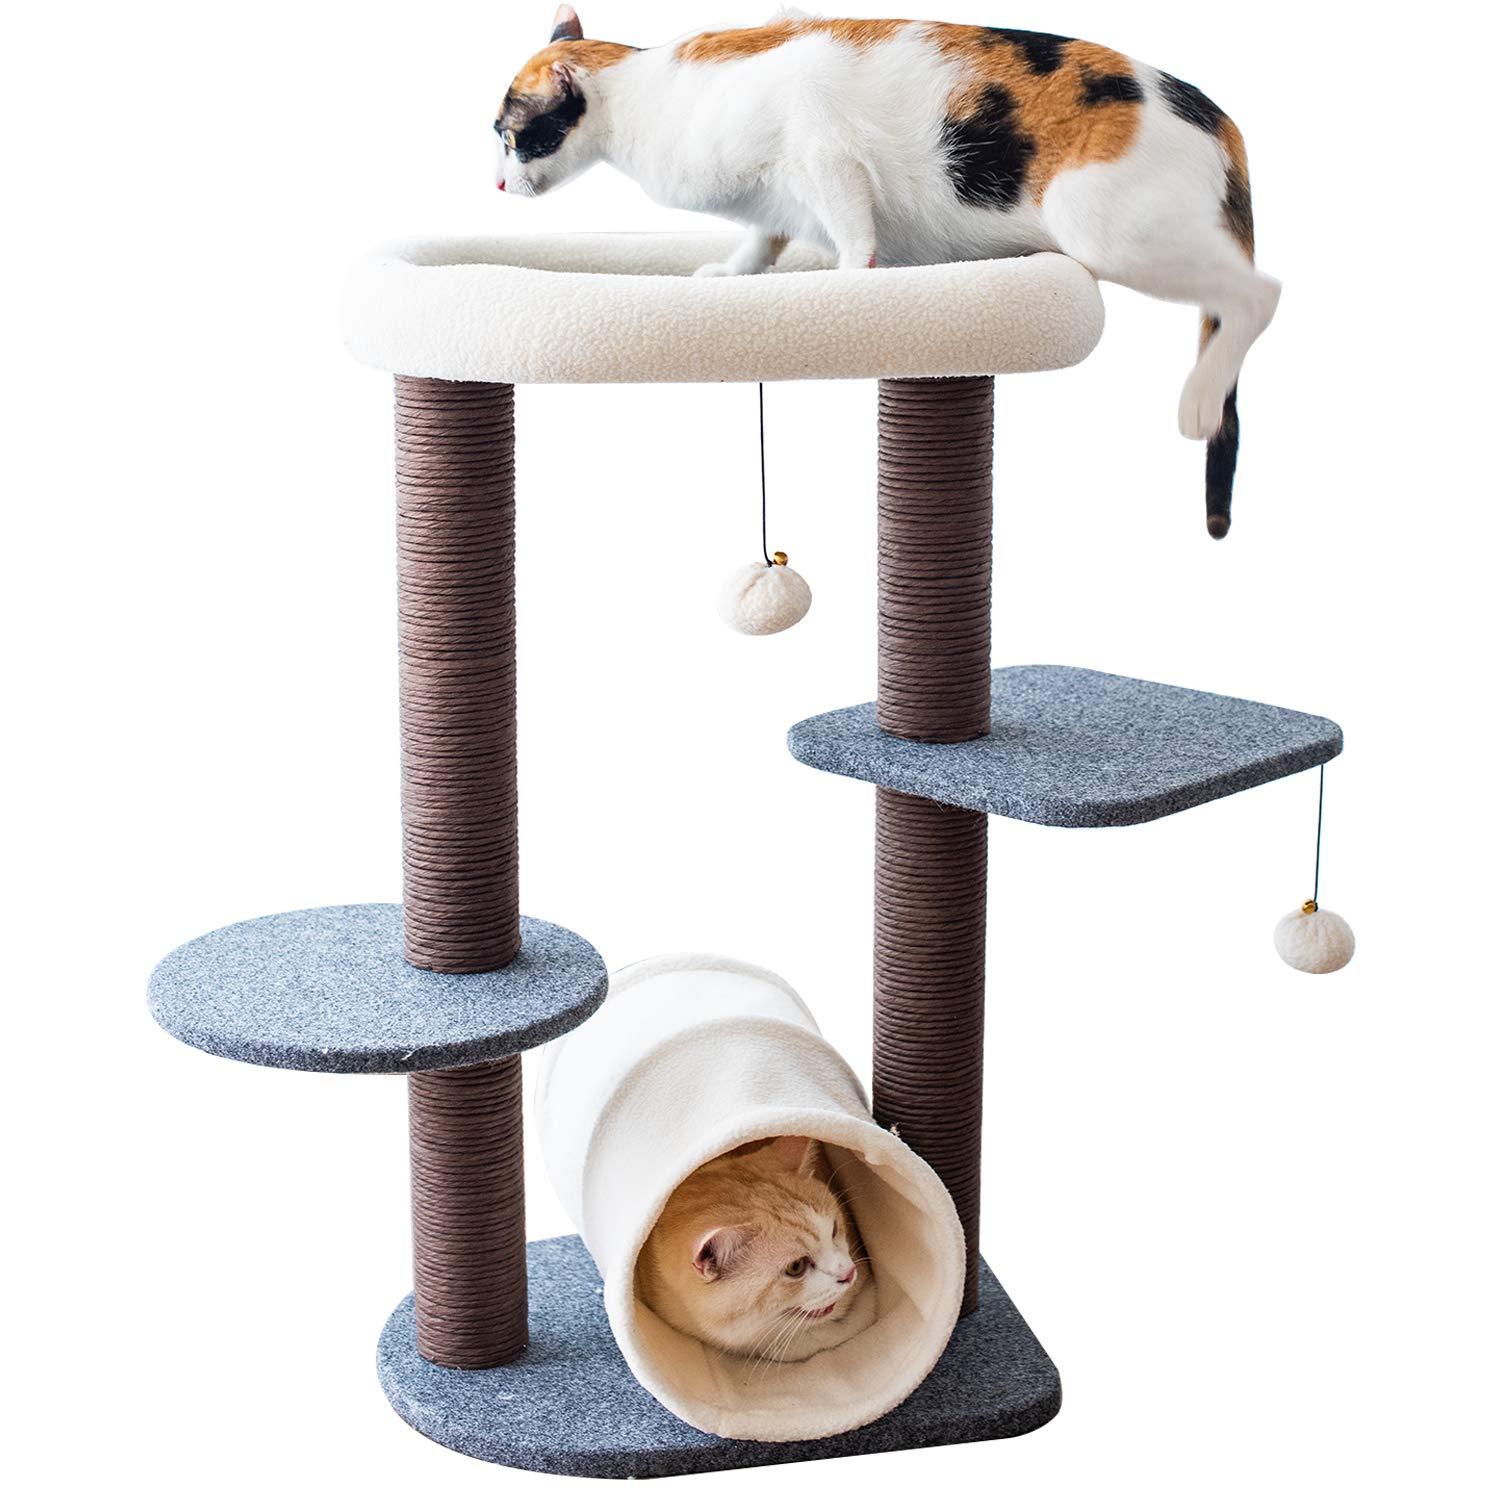 PetPals Cat Tree Cat Tower for Activity with Tunnel and Toy Ball, Gray by PetPals